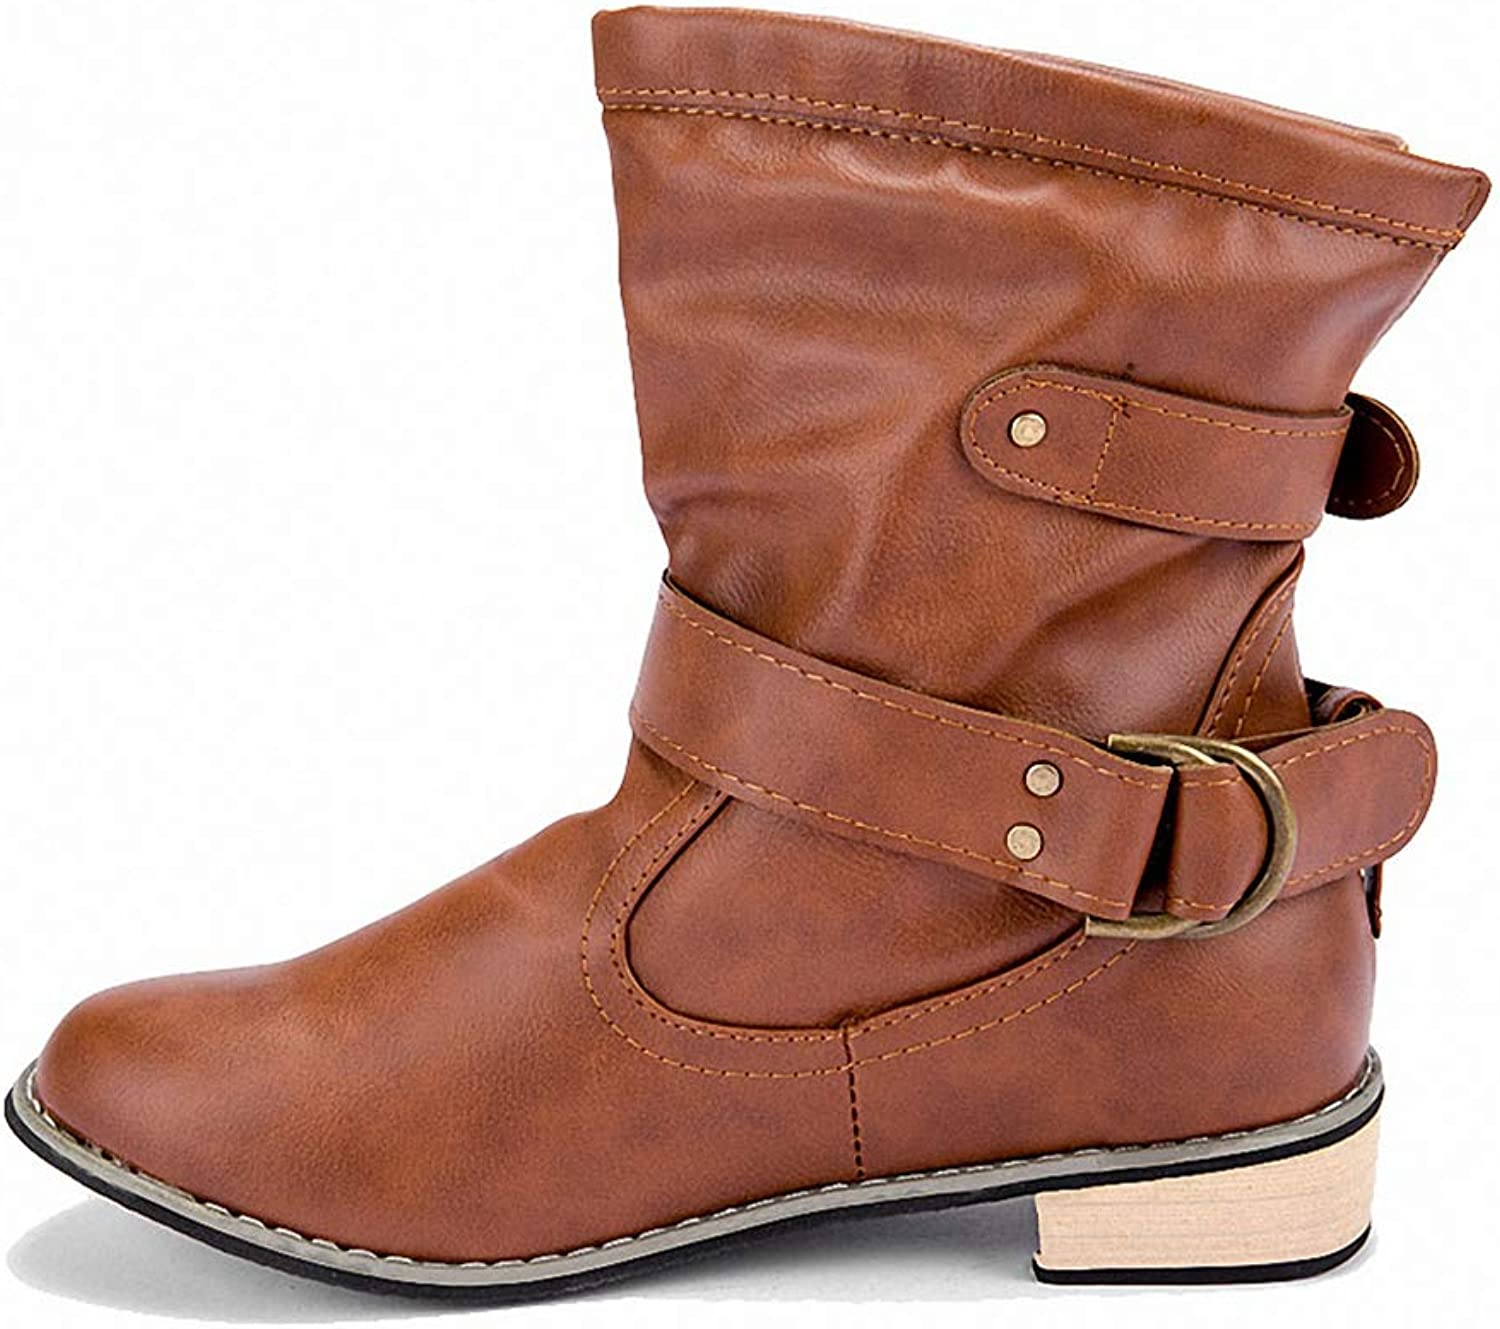 York Zhu Women Boots,Faux Leather Round Toe Chunky Ankle Fashion Boot